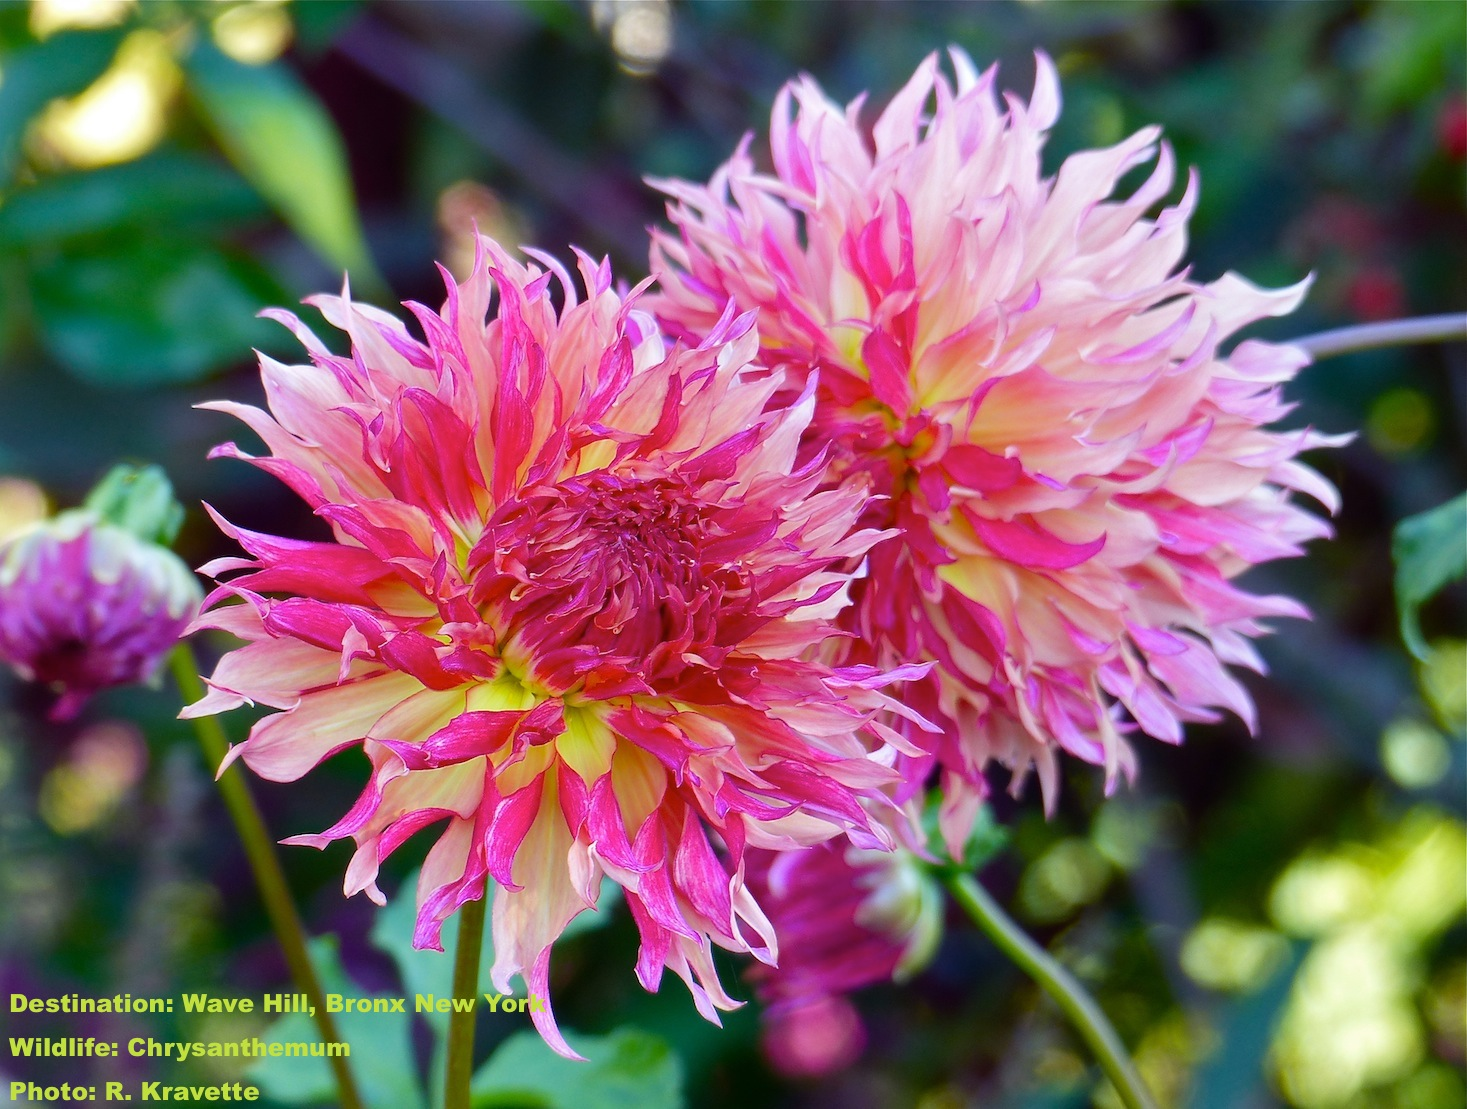 The chrysanthemums seemed to glow in one of Wave Hill's many gardens. IMAGE: ©R. KRAVETTE .